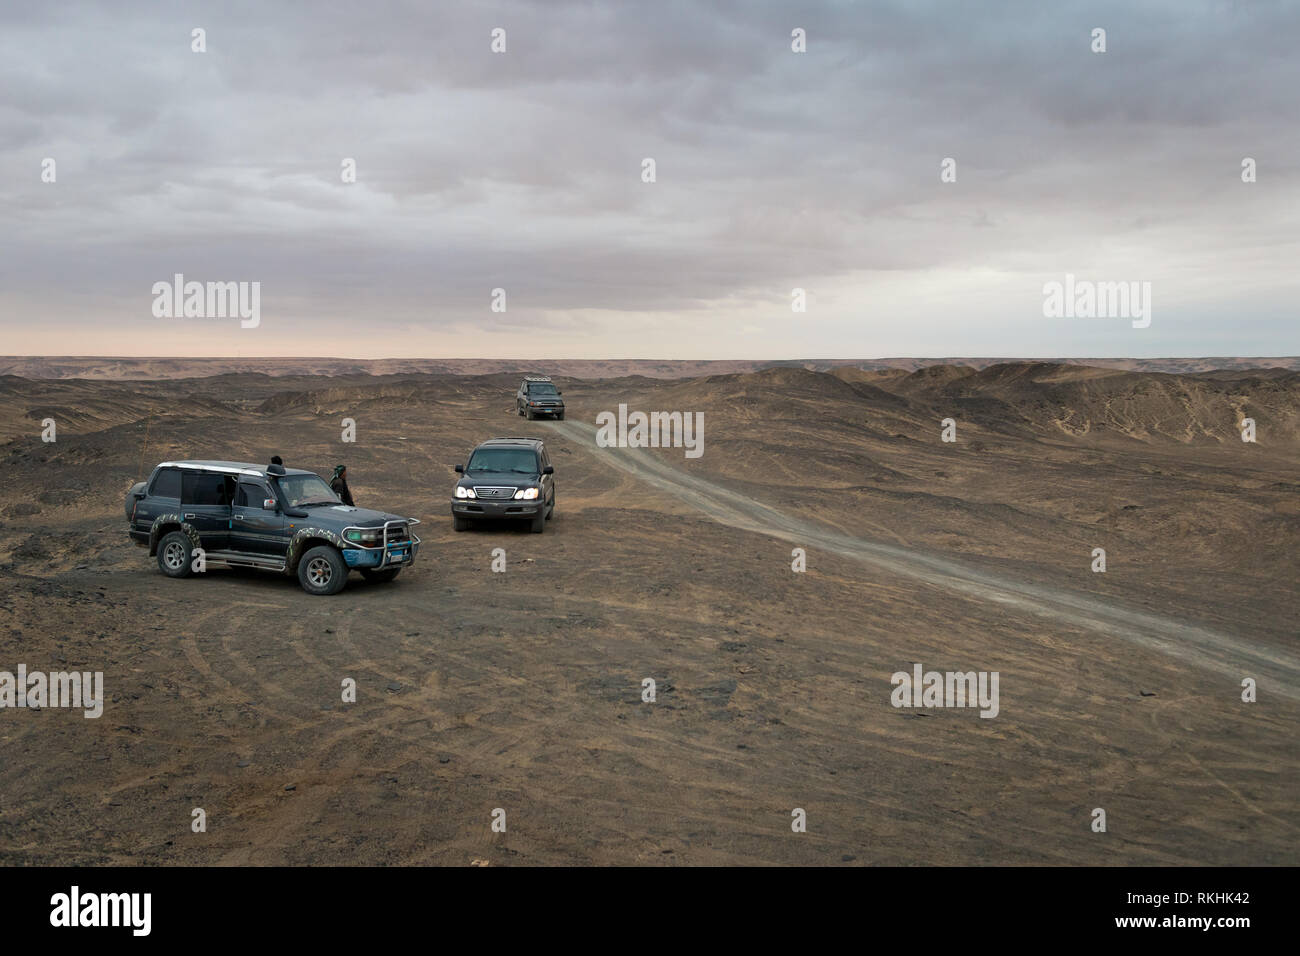 Three 4x4 Toyota and Lexus cars gather at the desert outside Bawiti at the Bahariya Oasis in Egypt - Stock Image